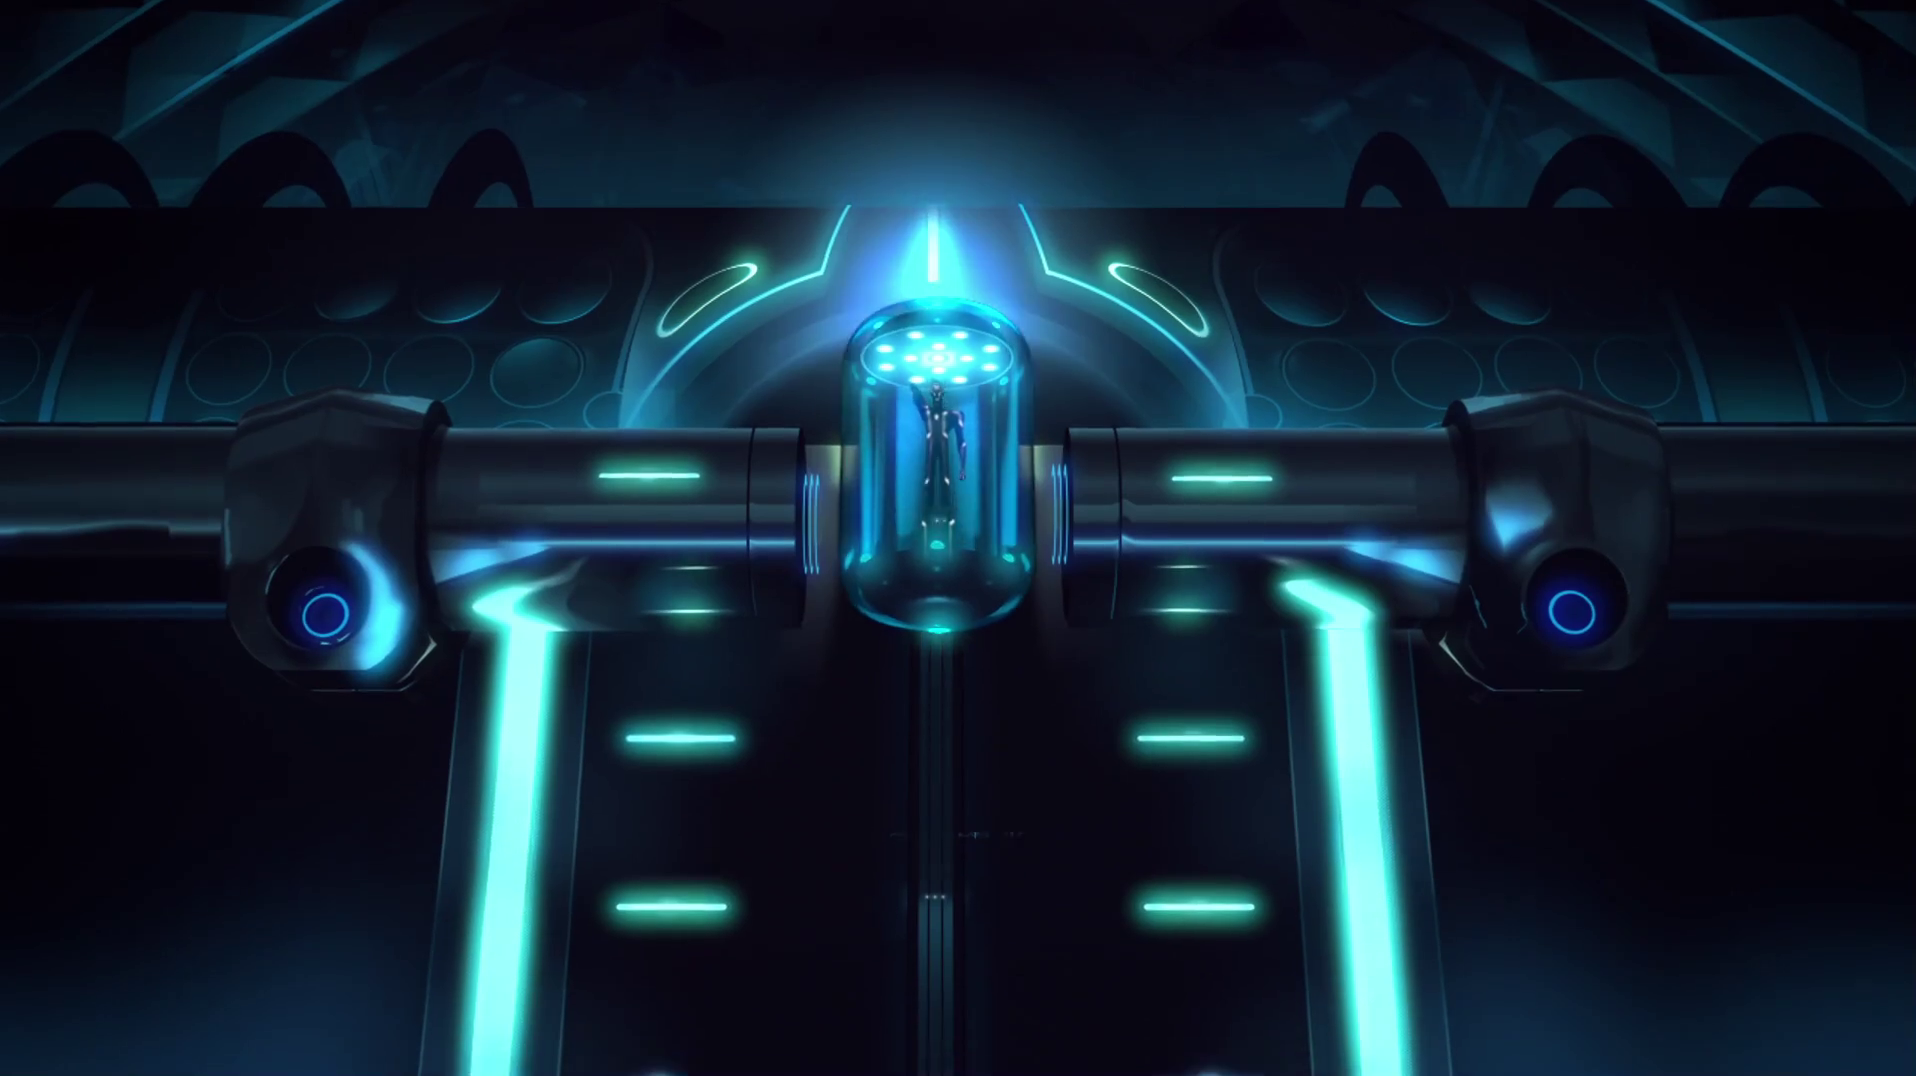 Tron_2019-08-05-22h39m33s759.png